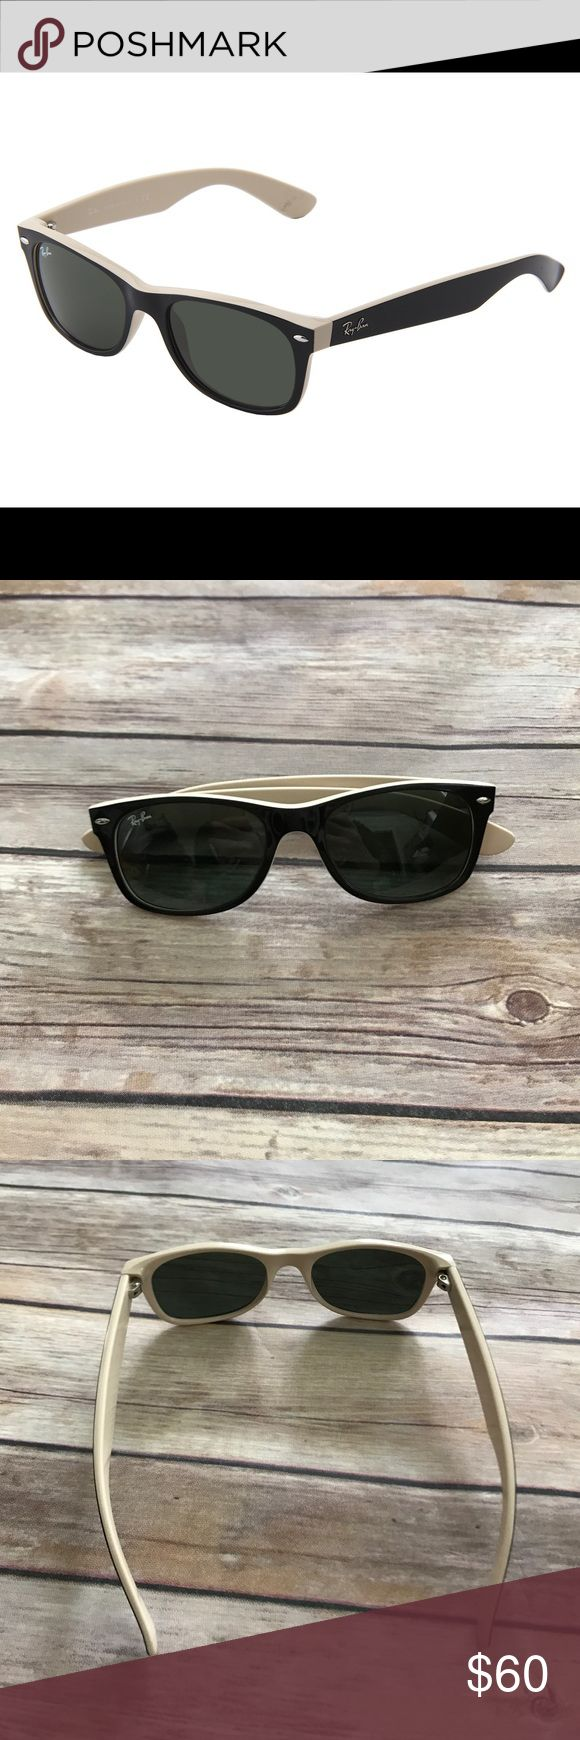 ray ban classic wayfarer sunglasses sale  ?flash sale ?ray ban wayfarers